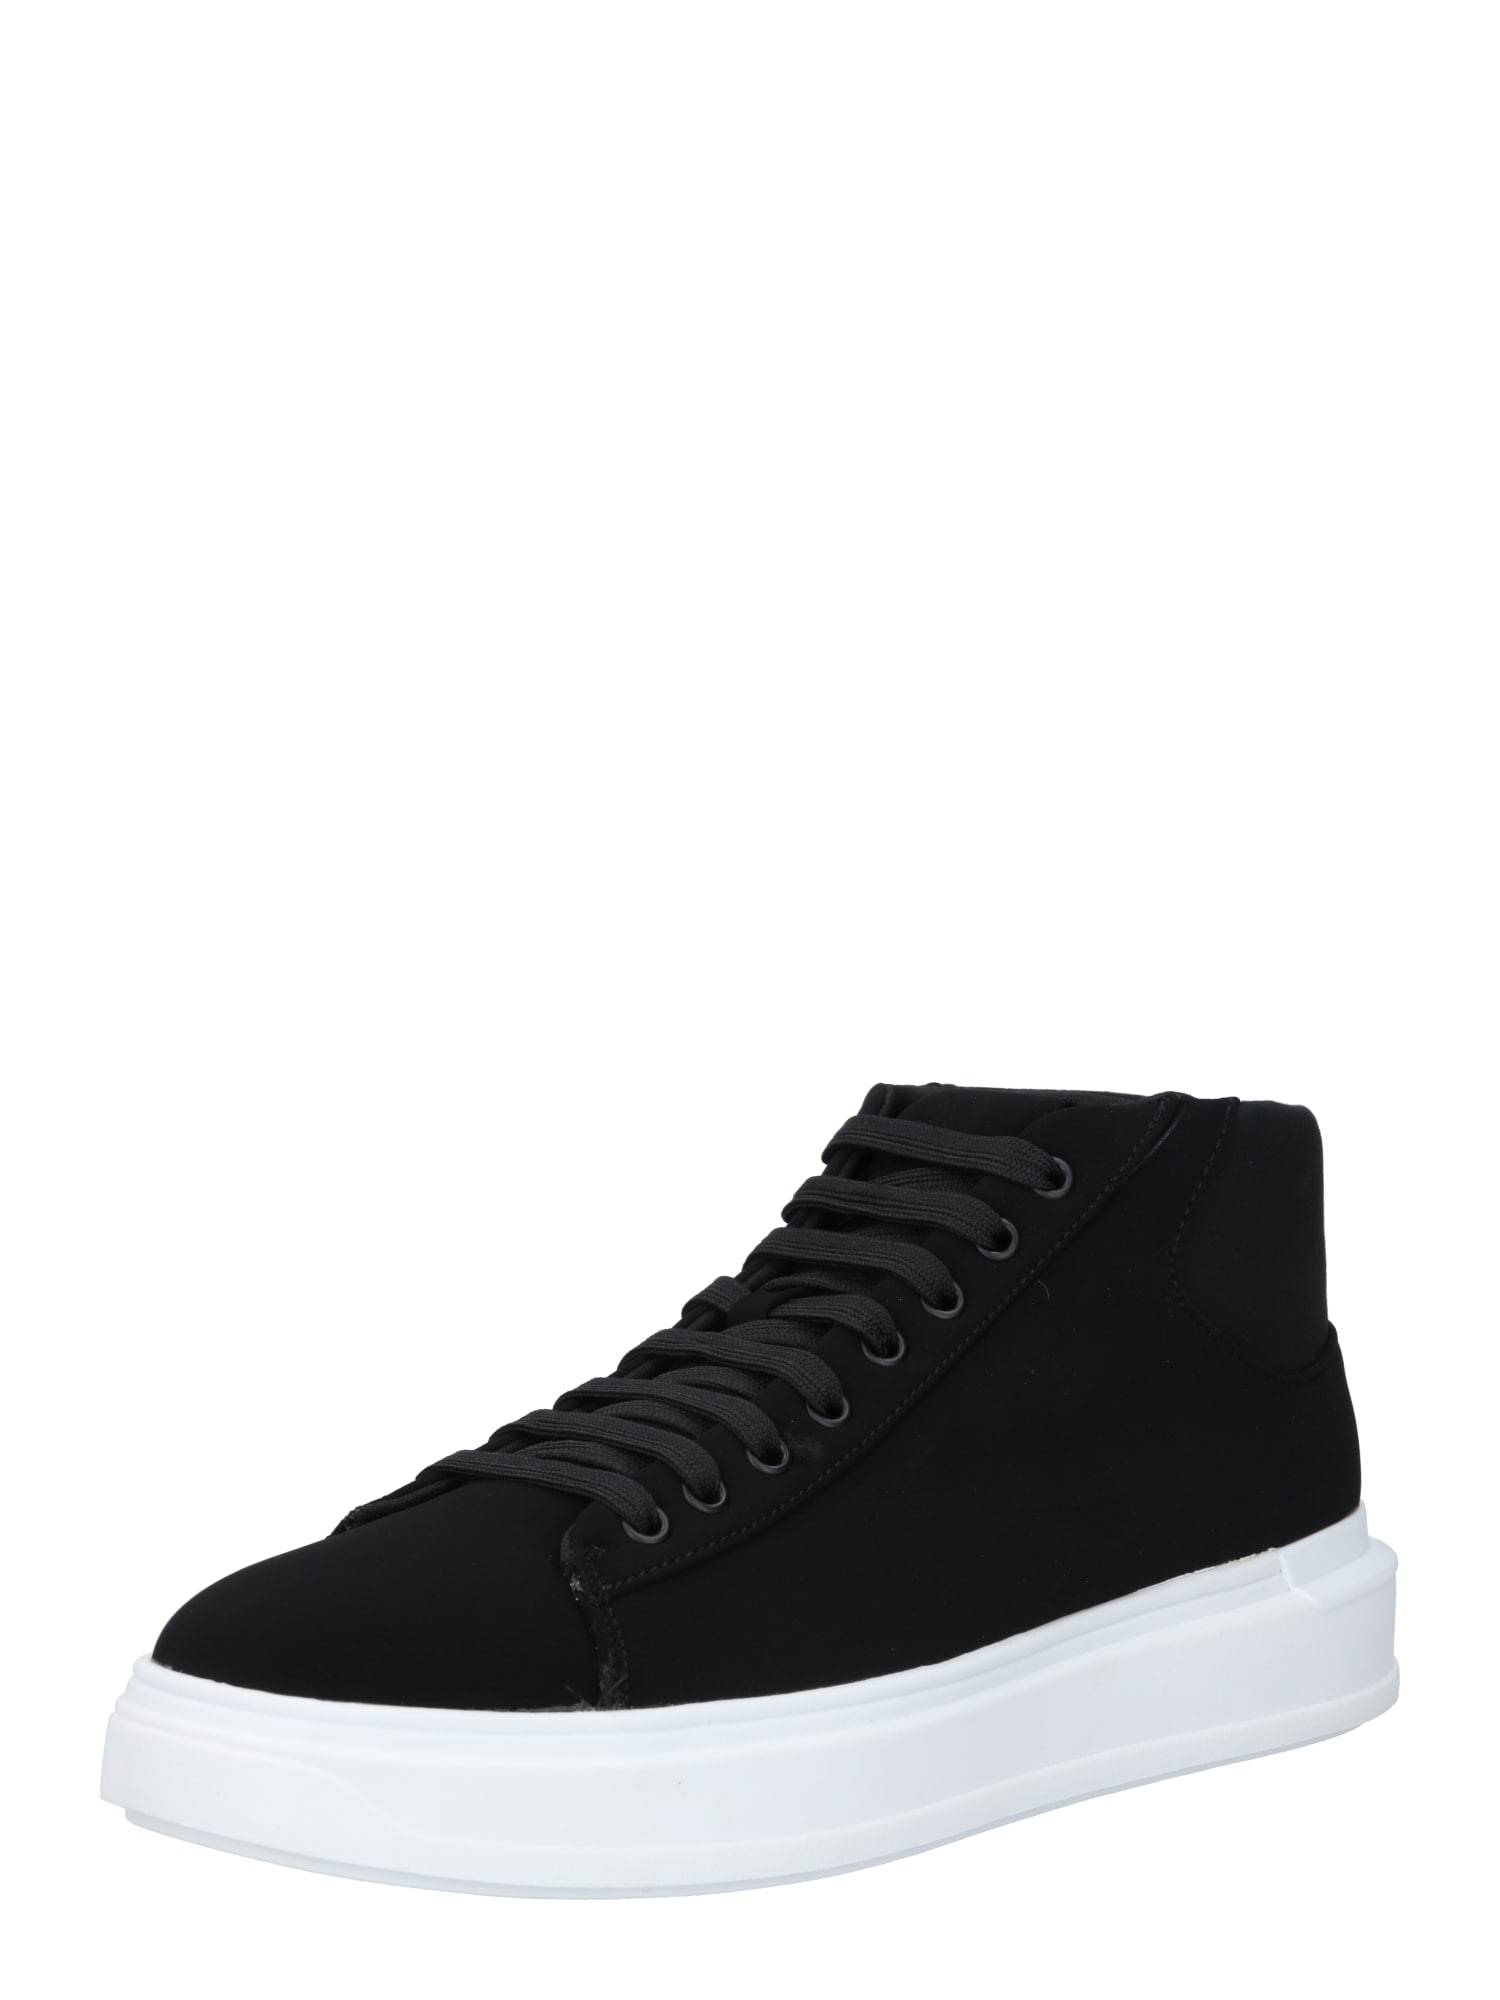 River Island Baskets hautes 'Silk Mid Top Wedge Trainer'  - Noir - Taille: 8 - male